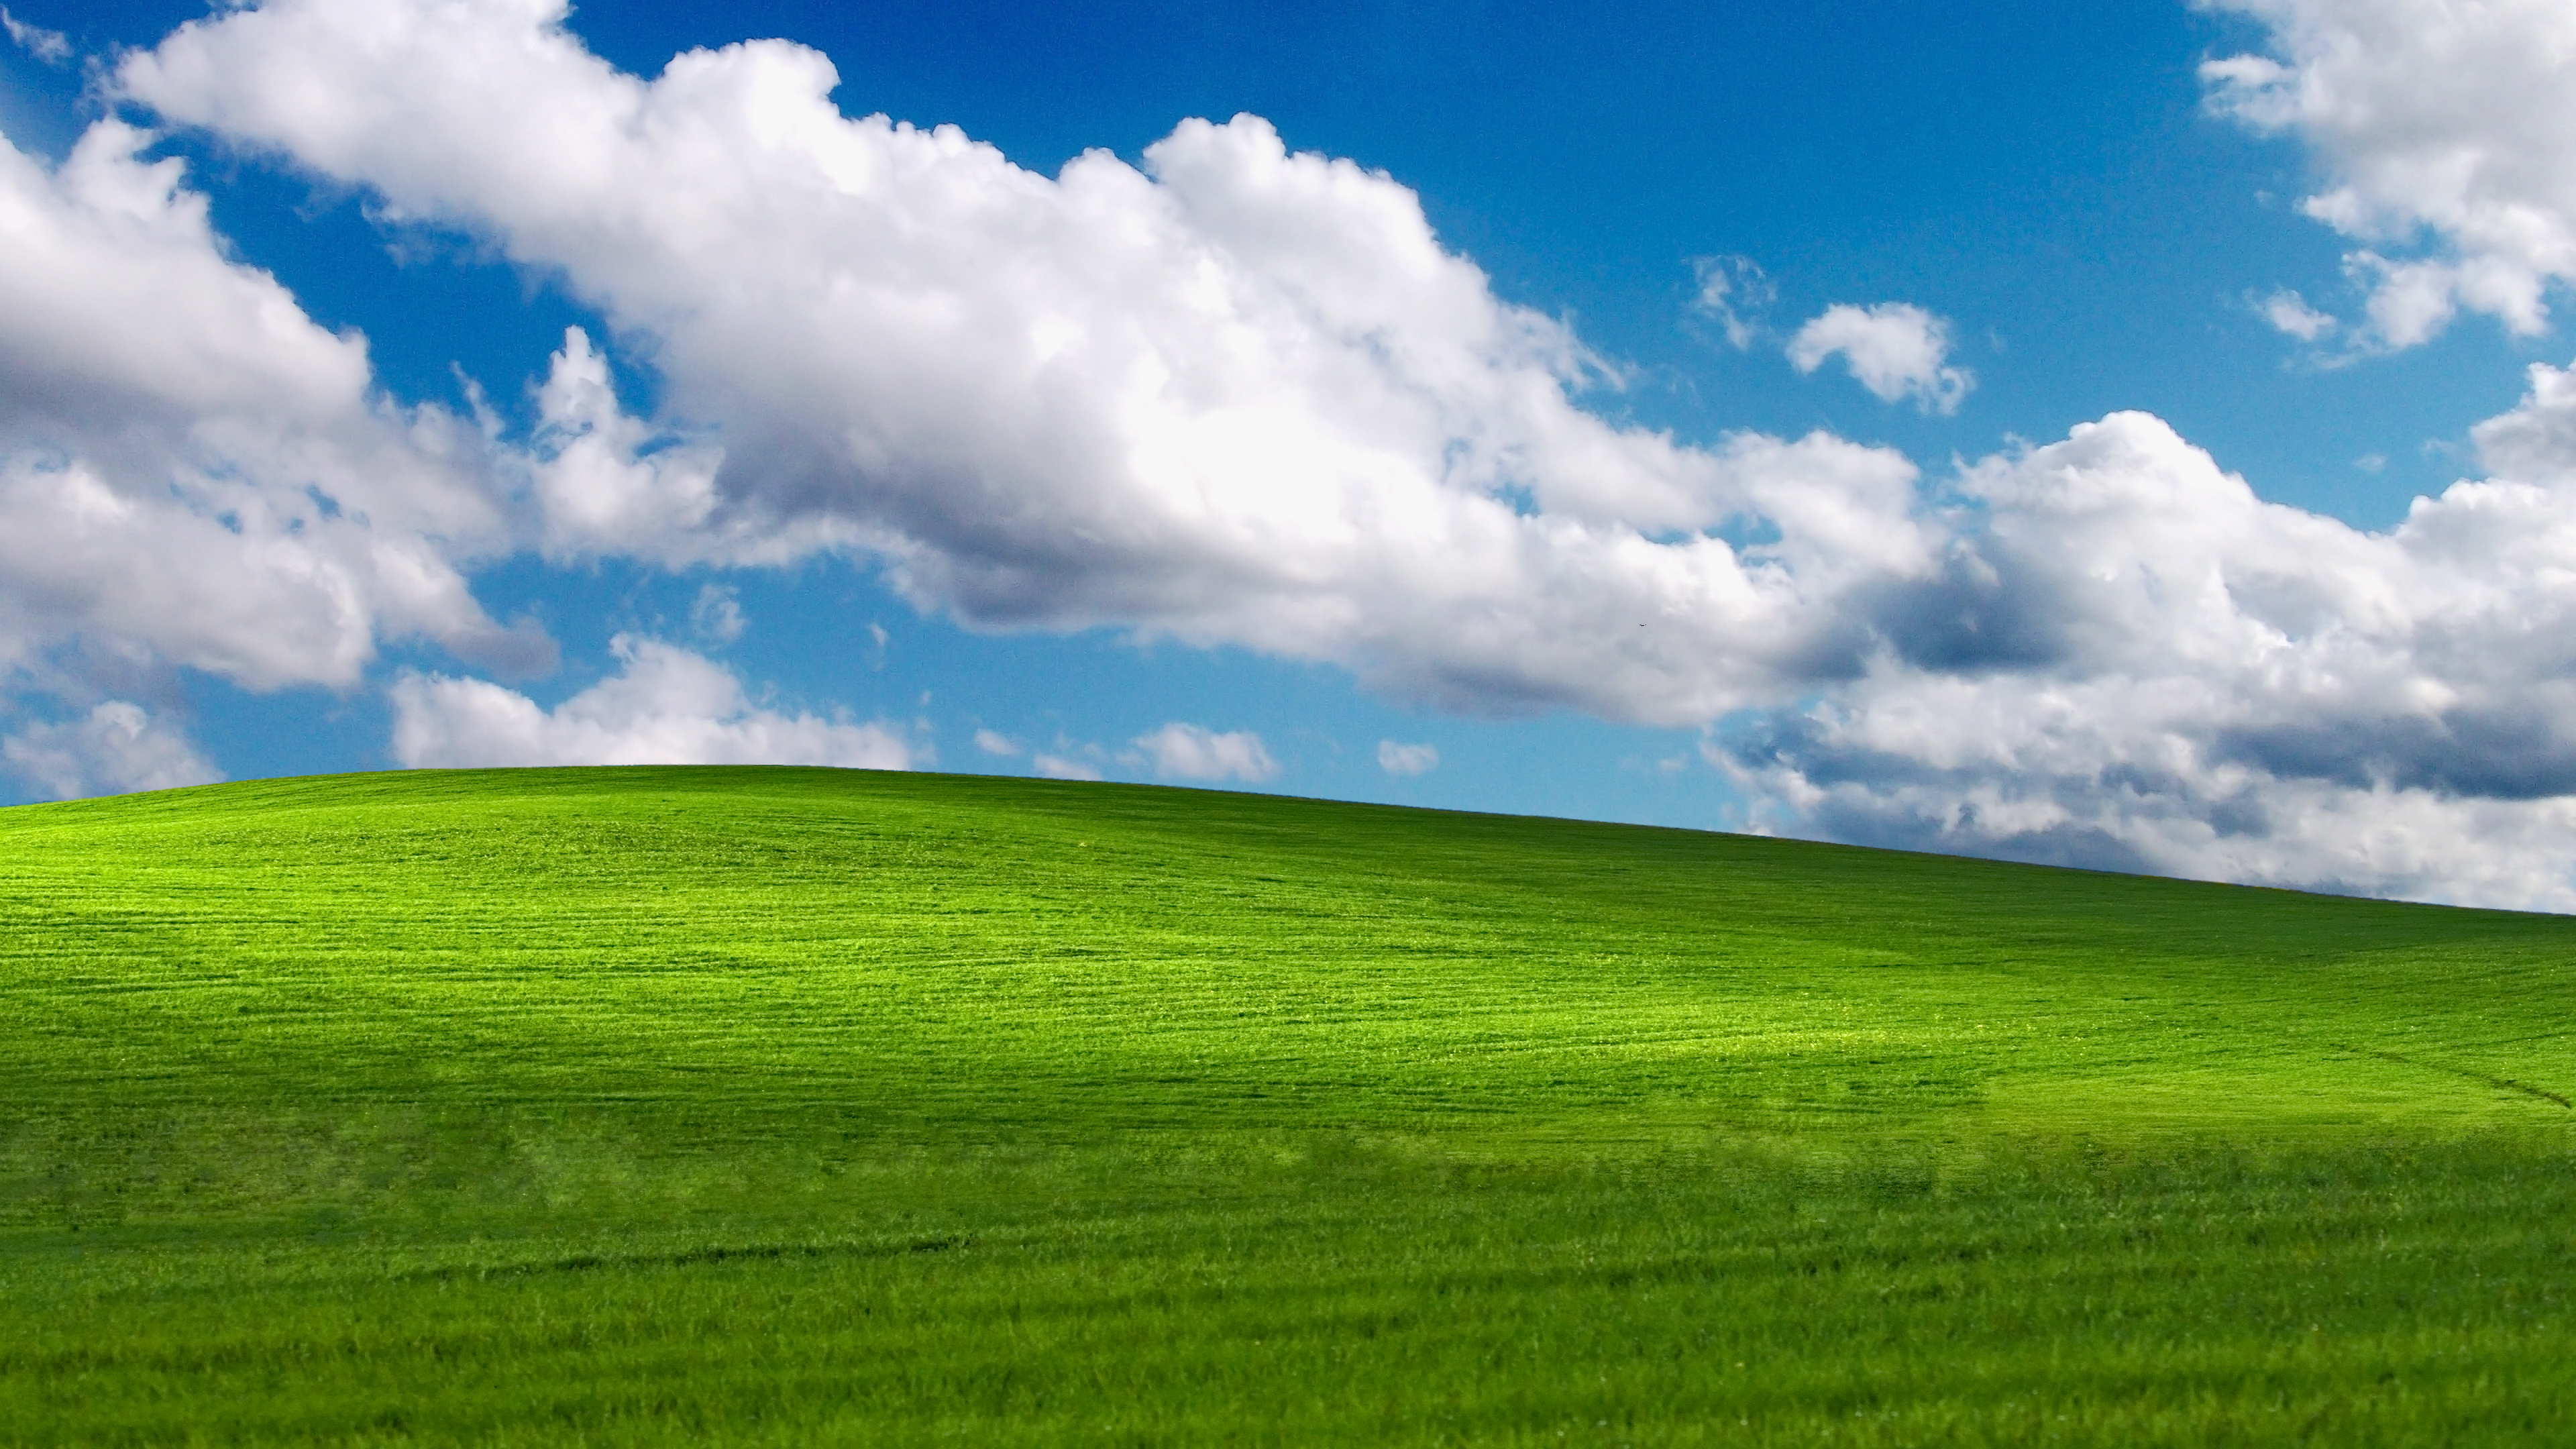 Windows Xp Bliss Wallpaper By Mrschlendermann Windows Xp Background 4k 3840x2160 Download Hd Wallpaper Wallpapertip